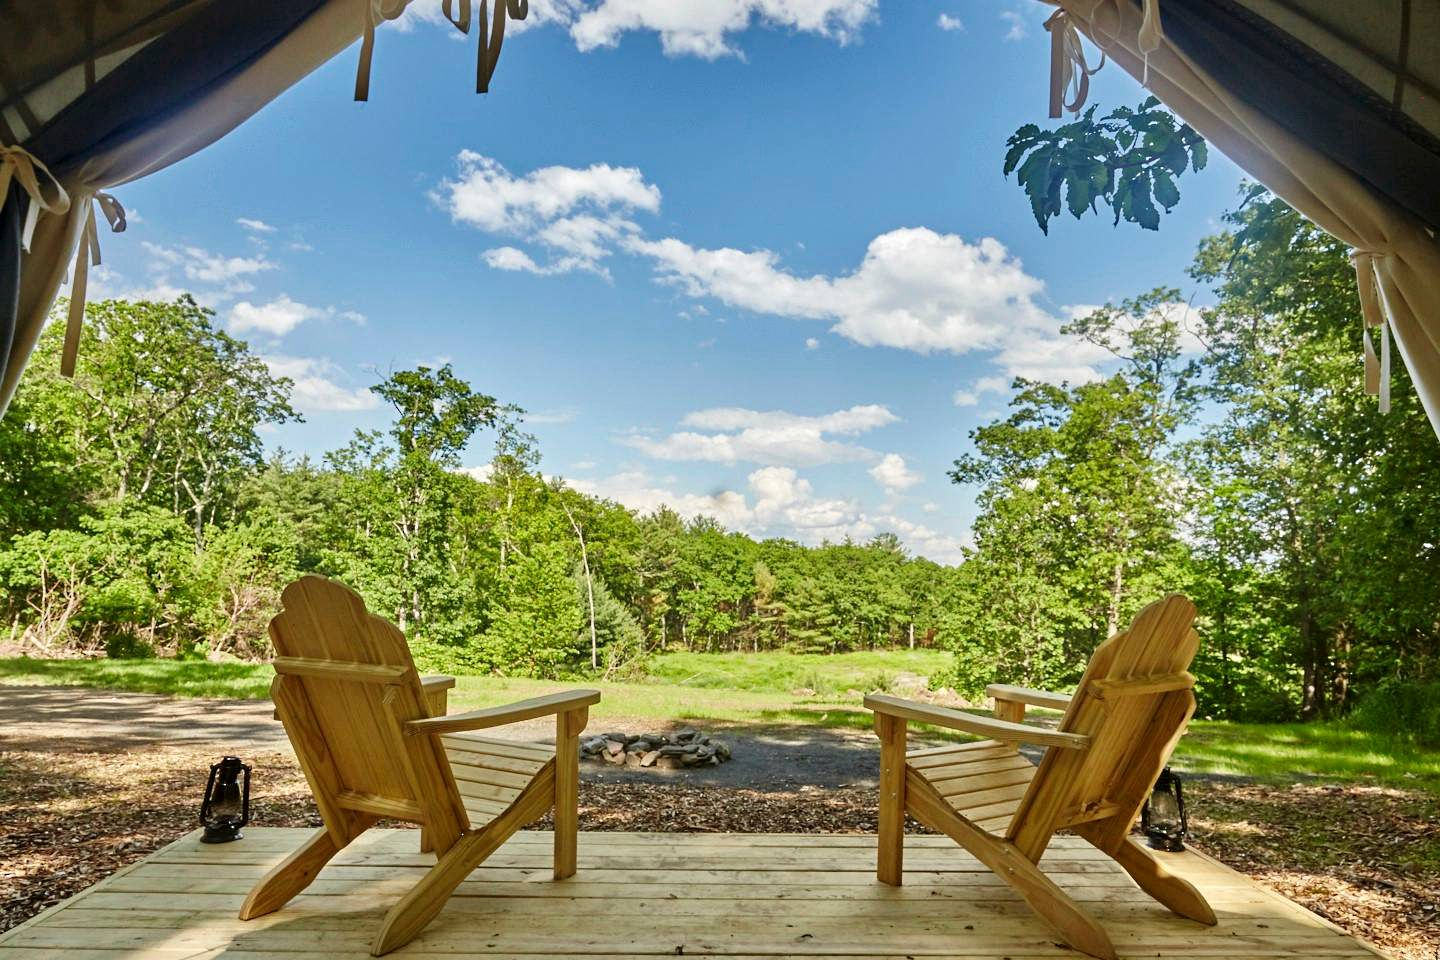 Tented Cabins (Catskill, New York, United States)